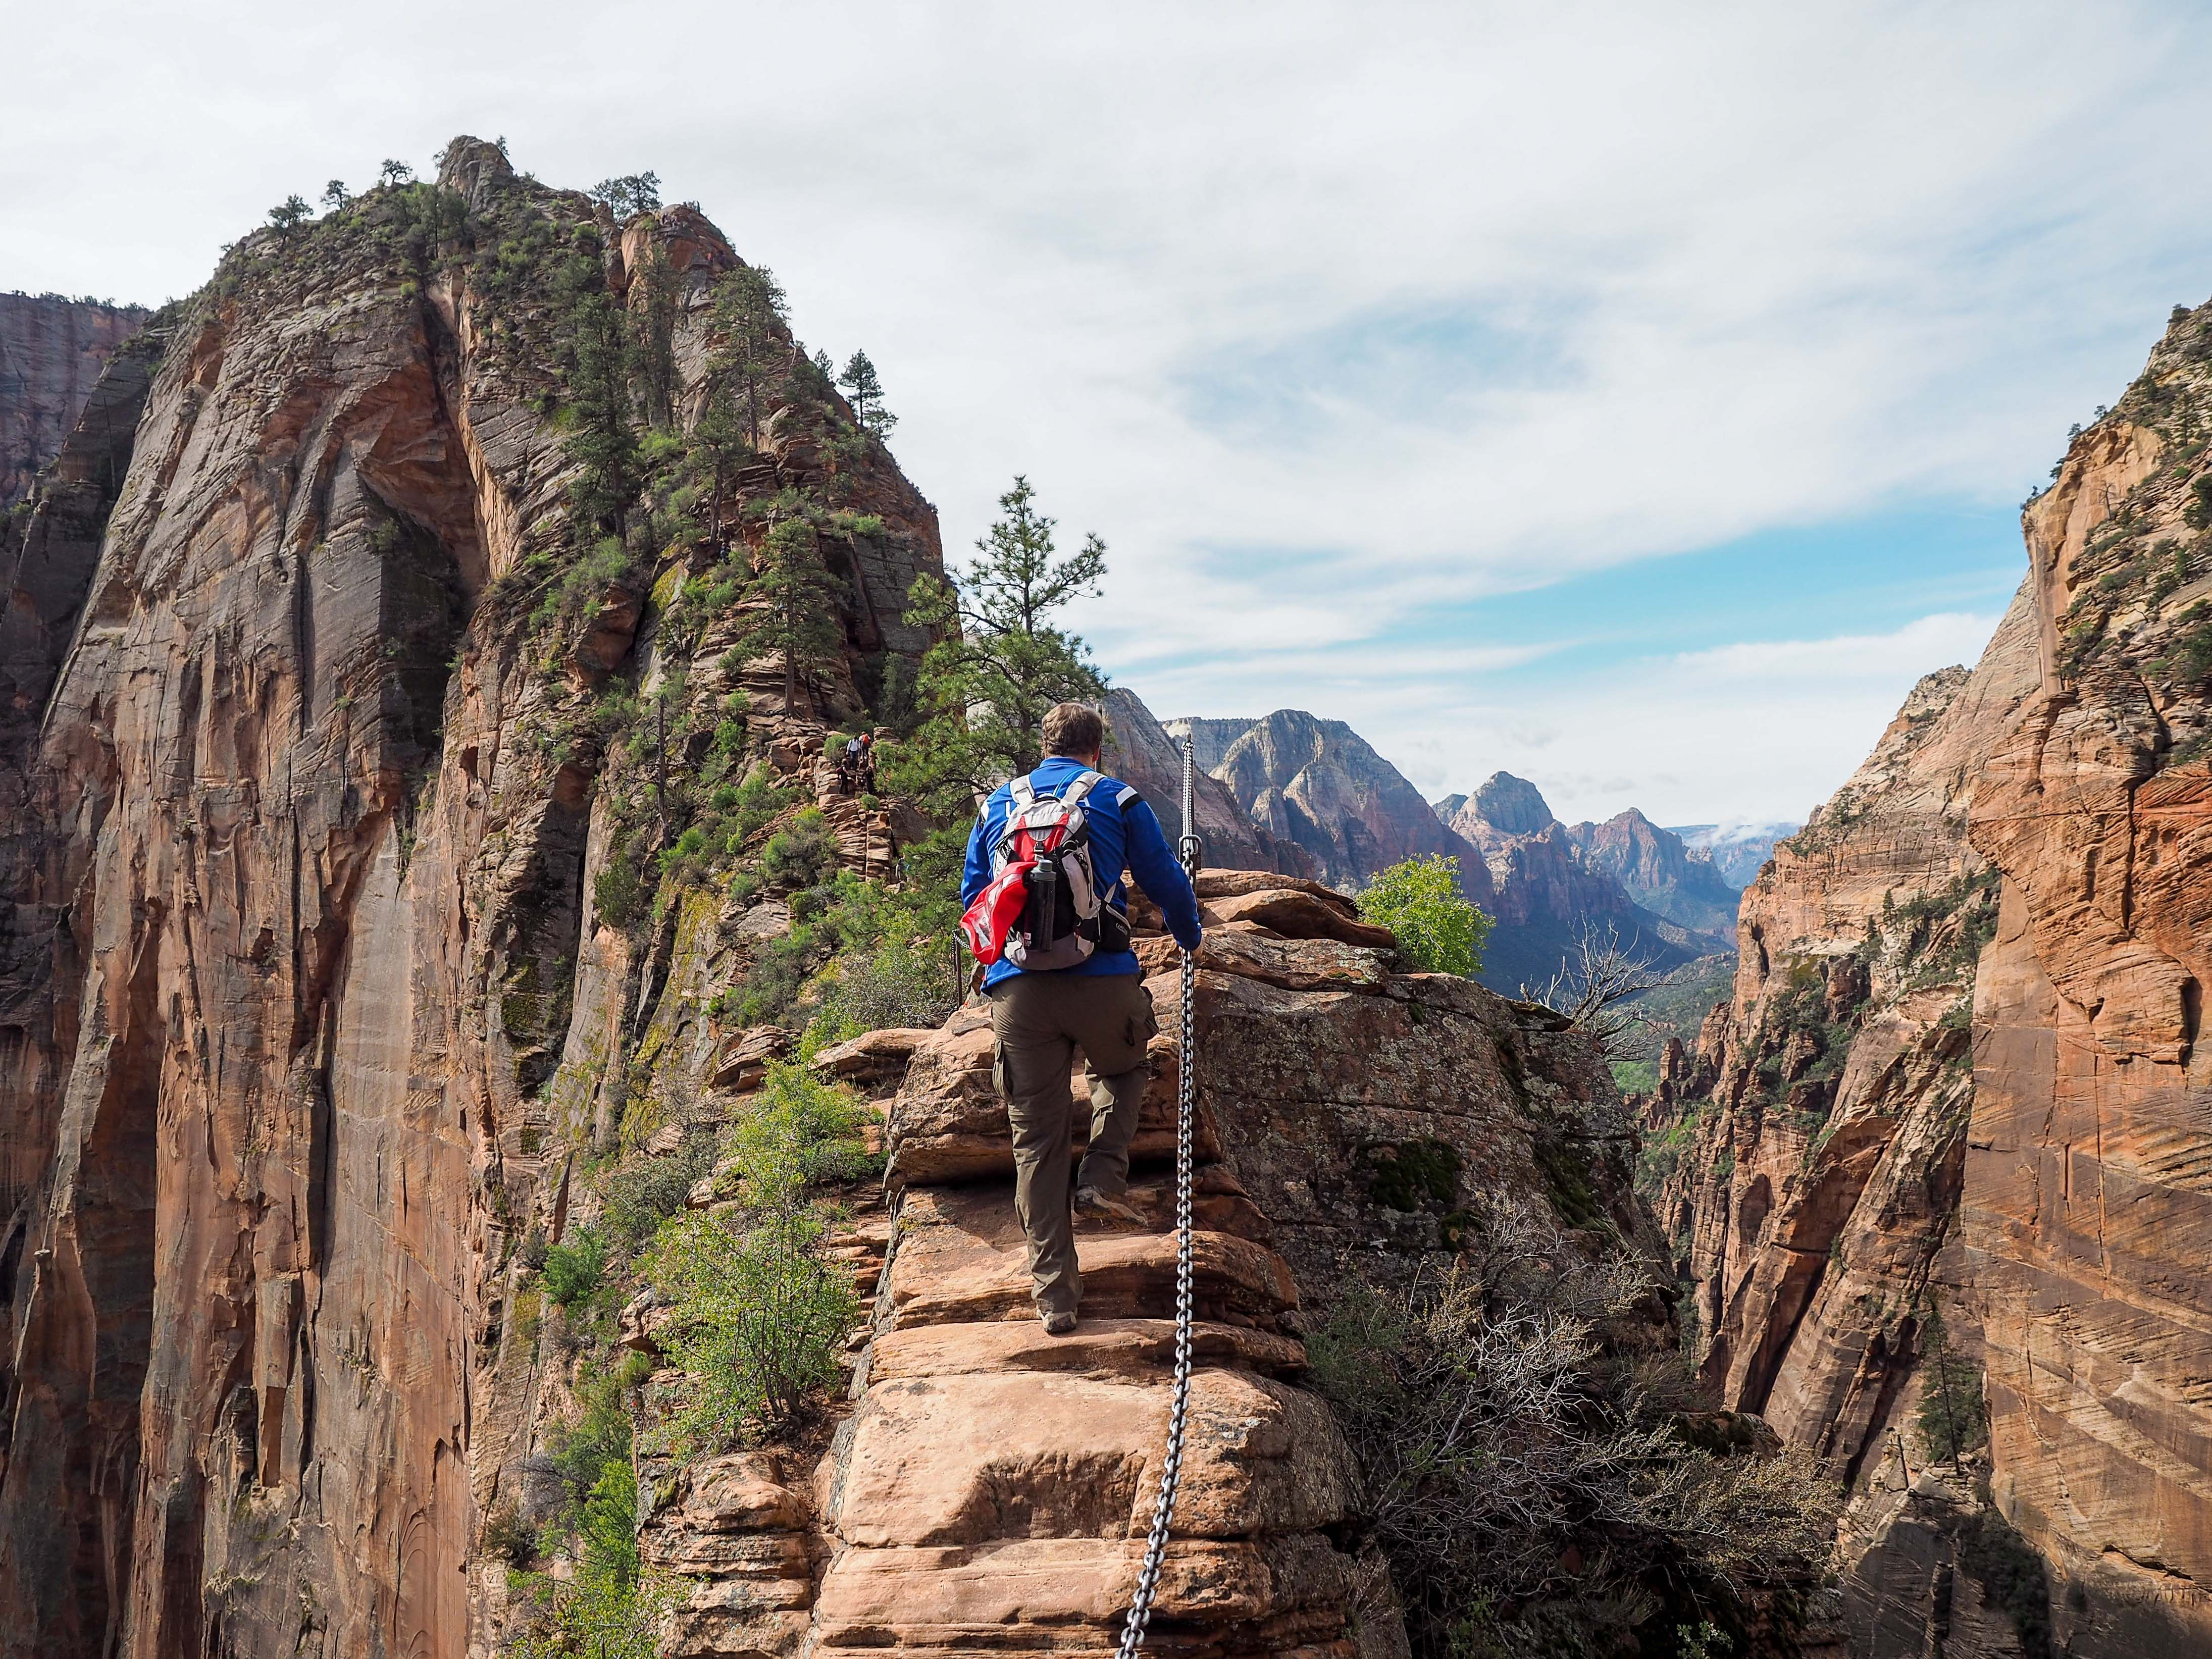 hiking the angels landing trail in zion national park: what's it